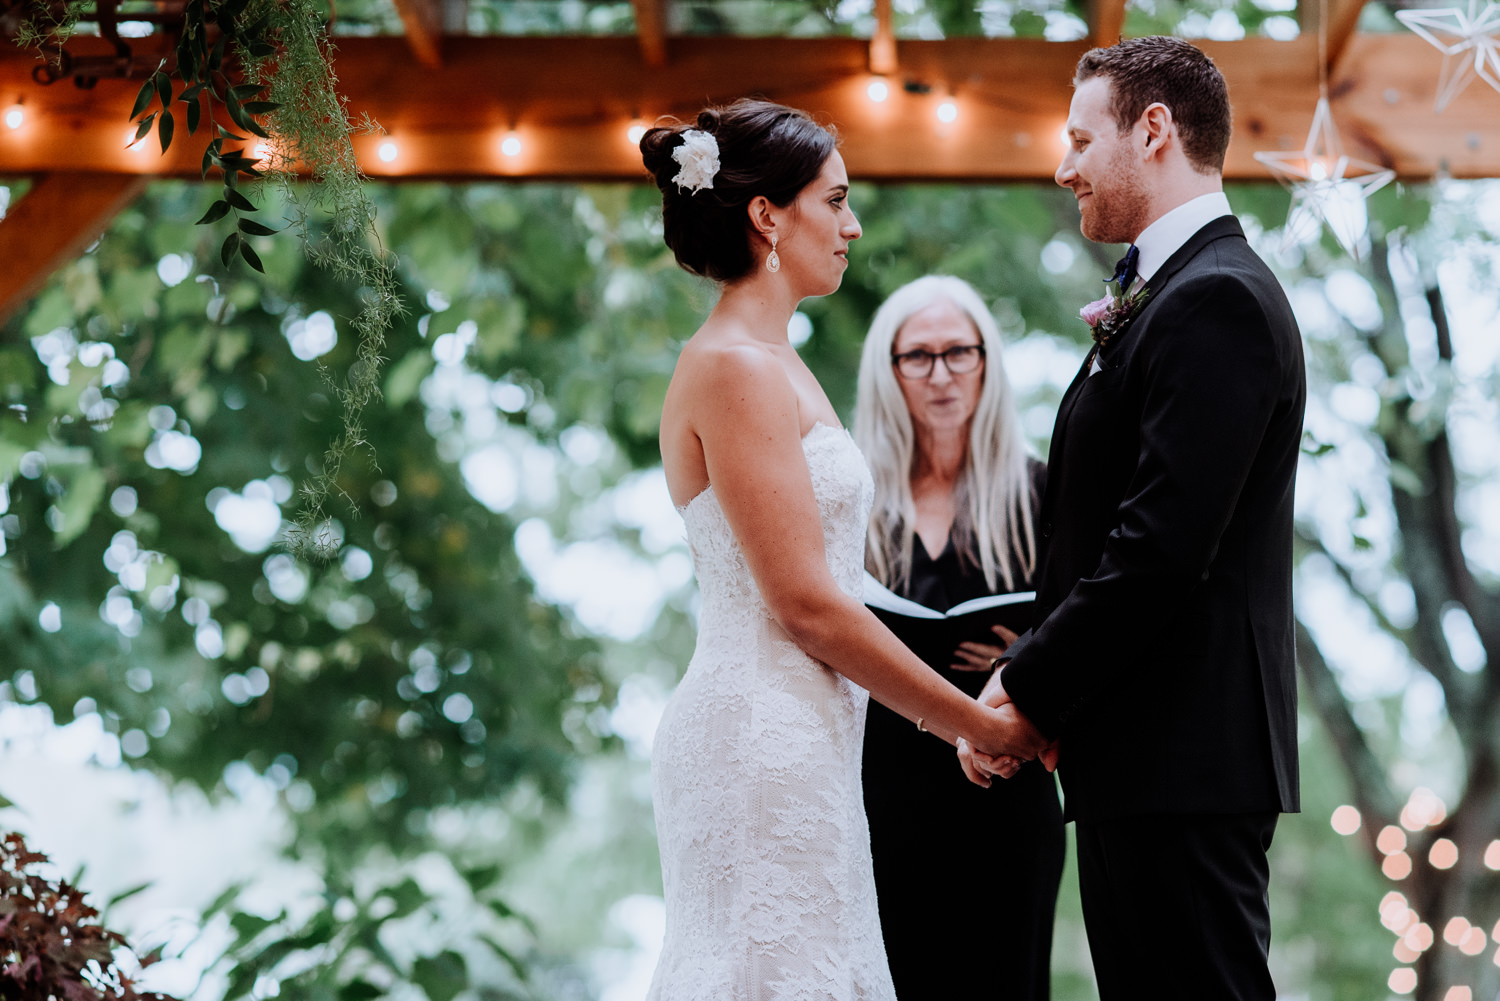 Red Maple Vineyard wedding rain ceremony